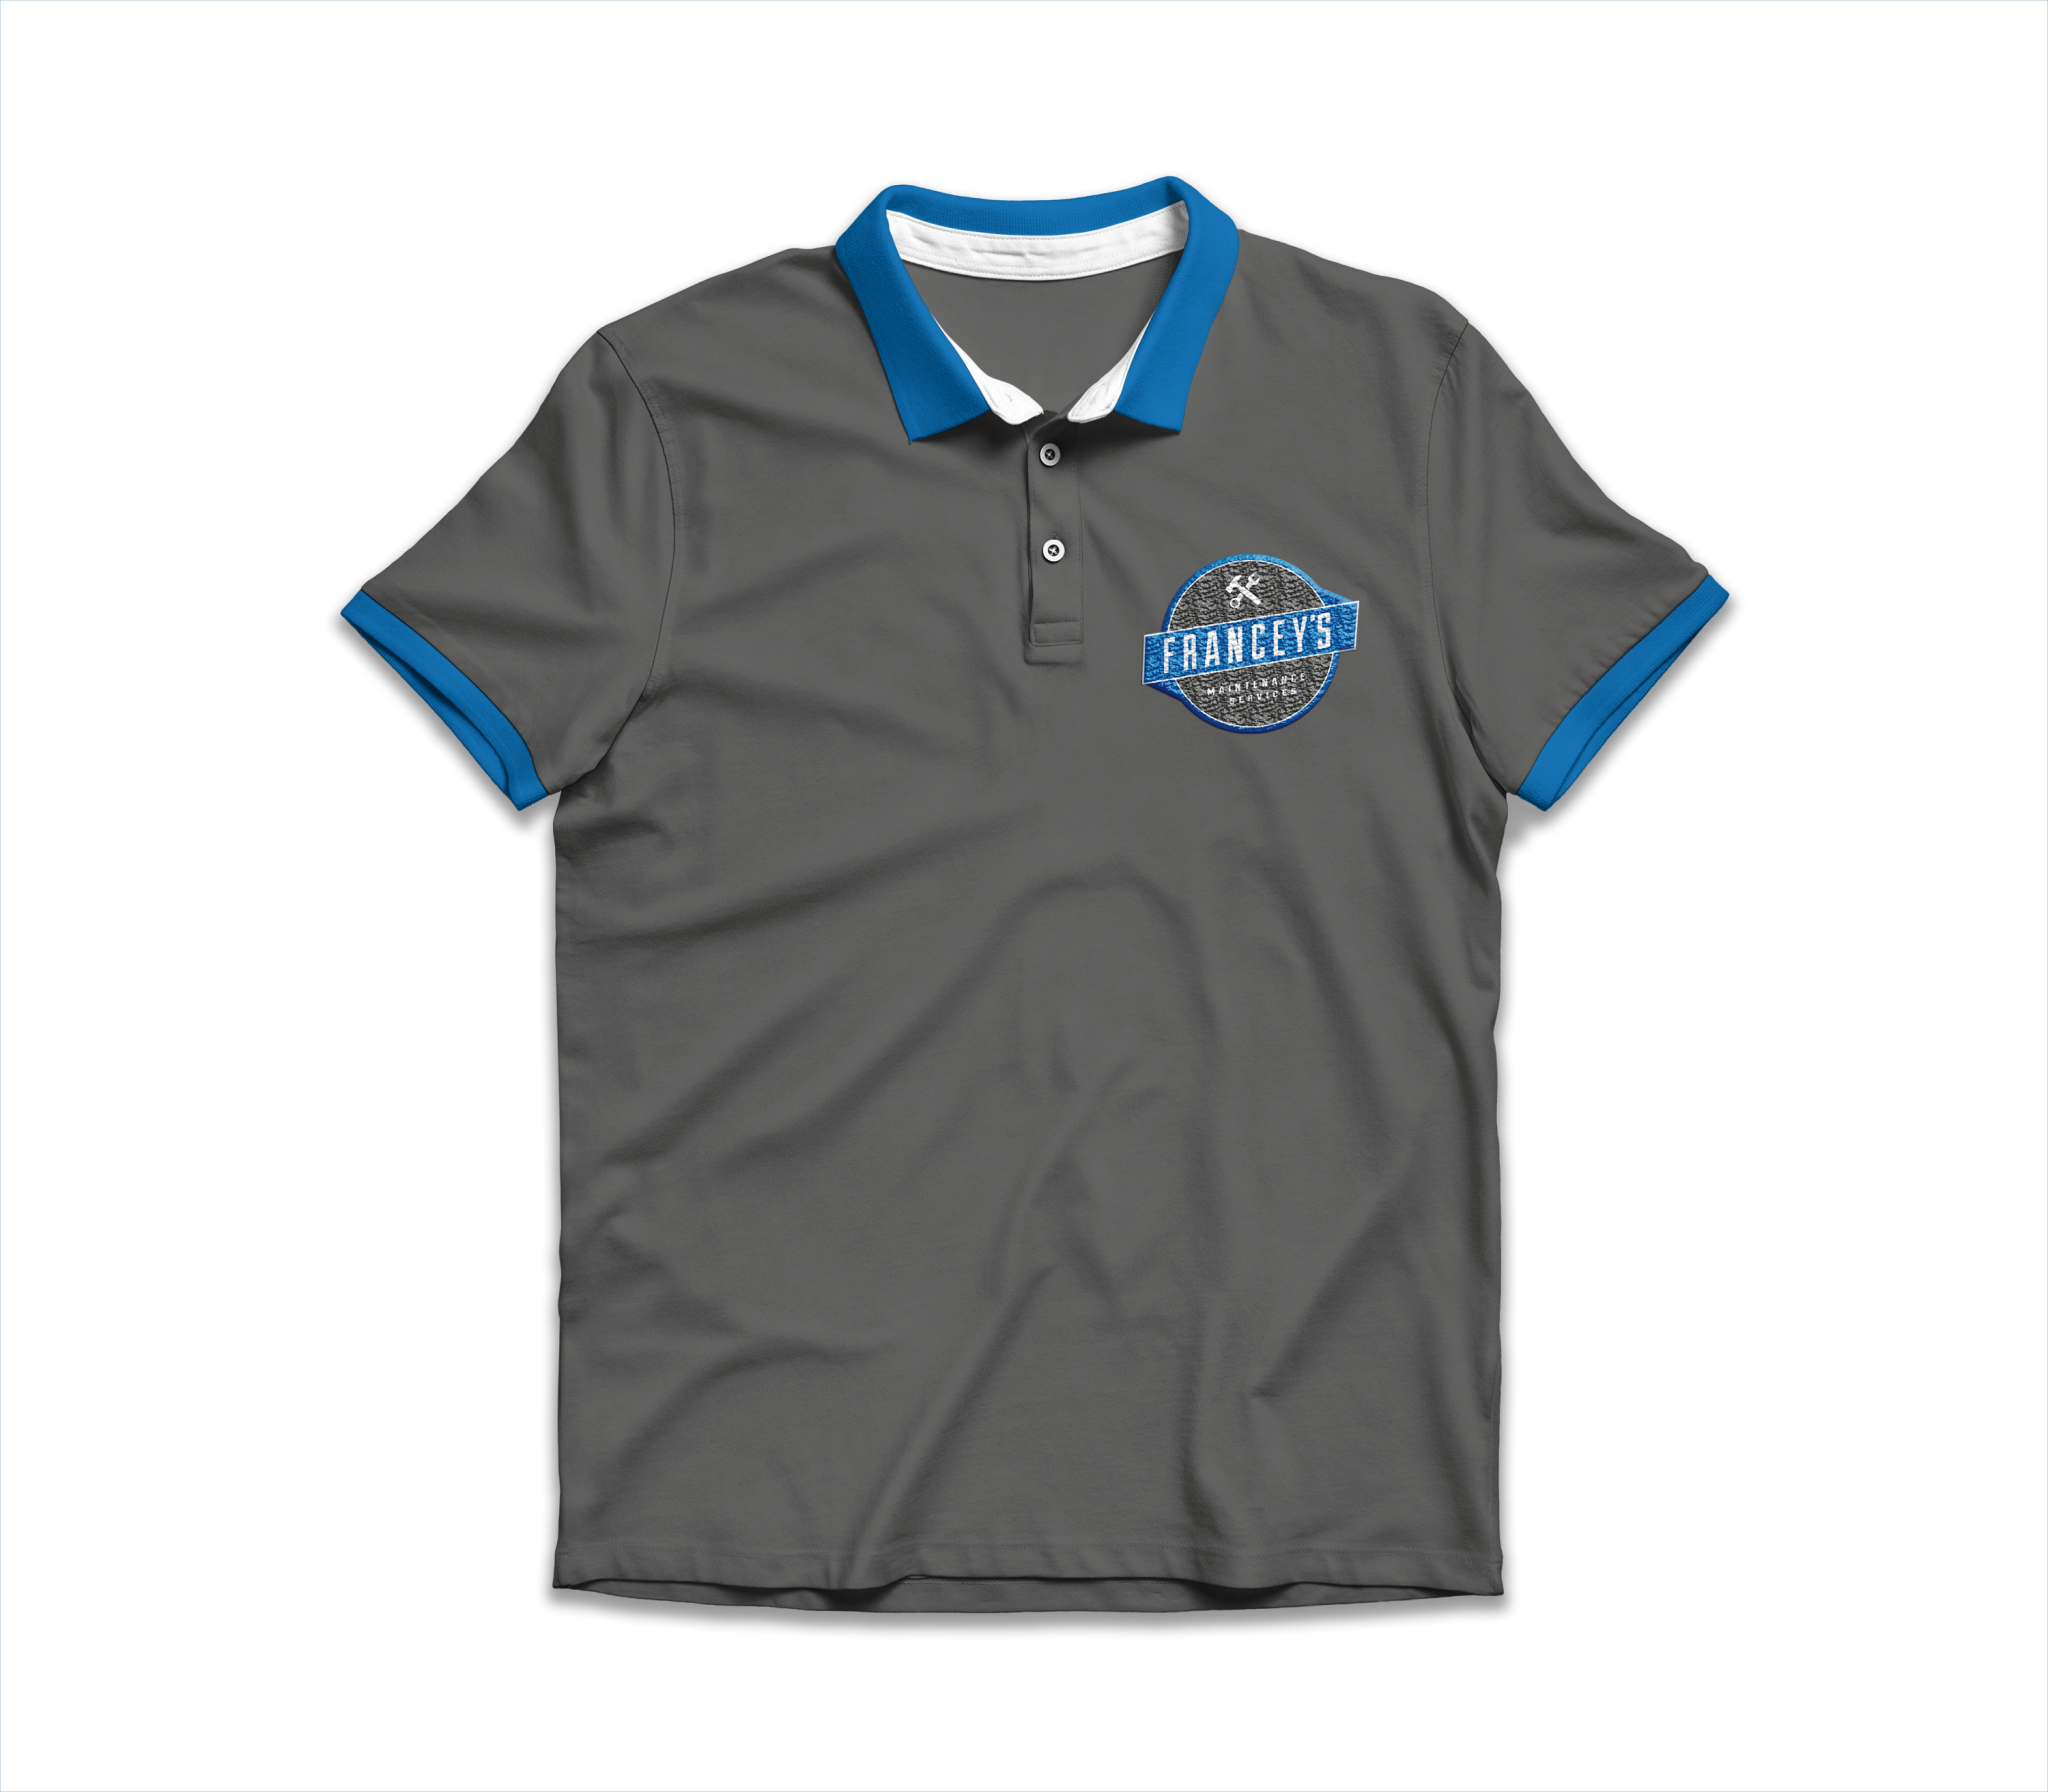 grey polo shirt with blue trim and francey's maintenance logo embroidered on to it